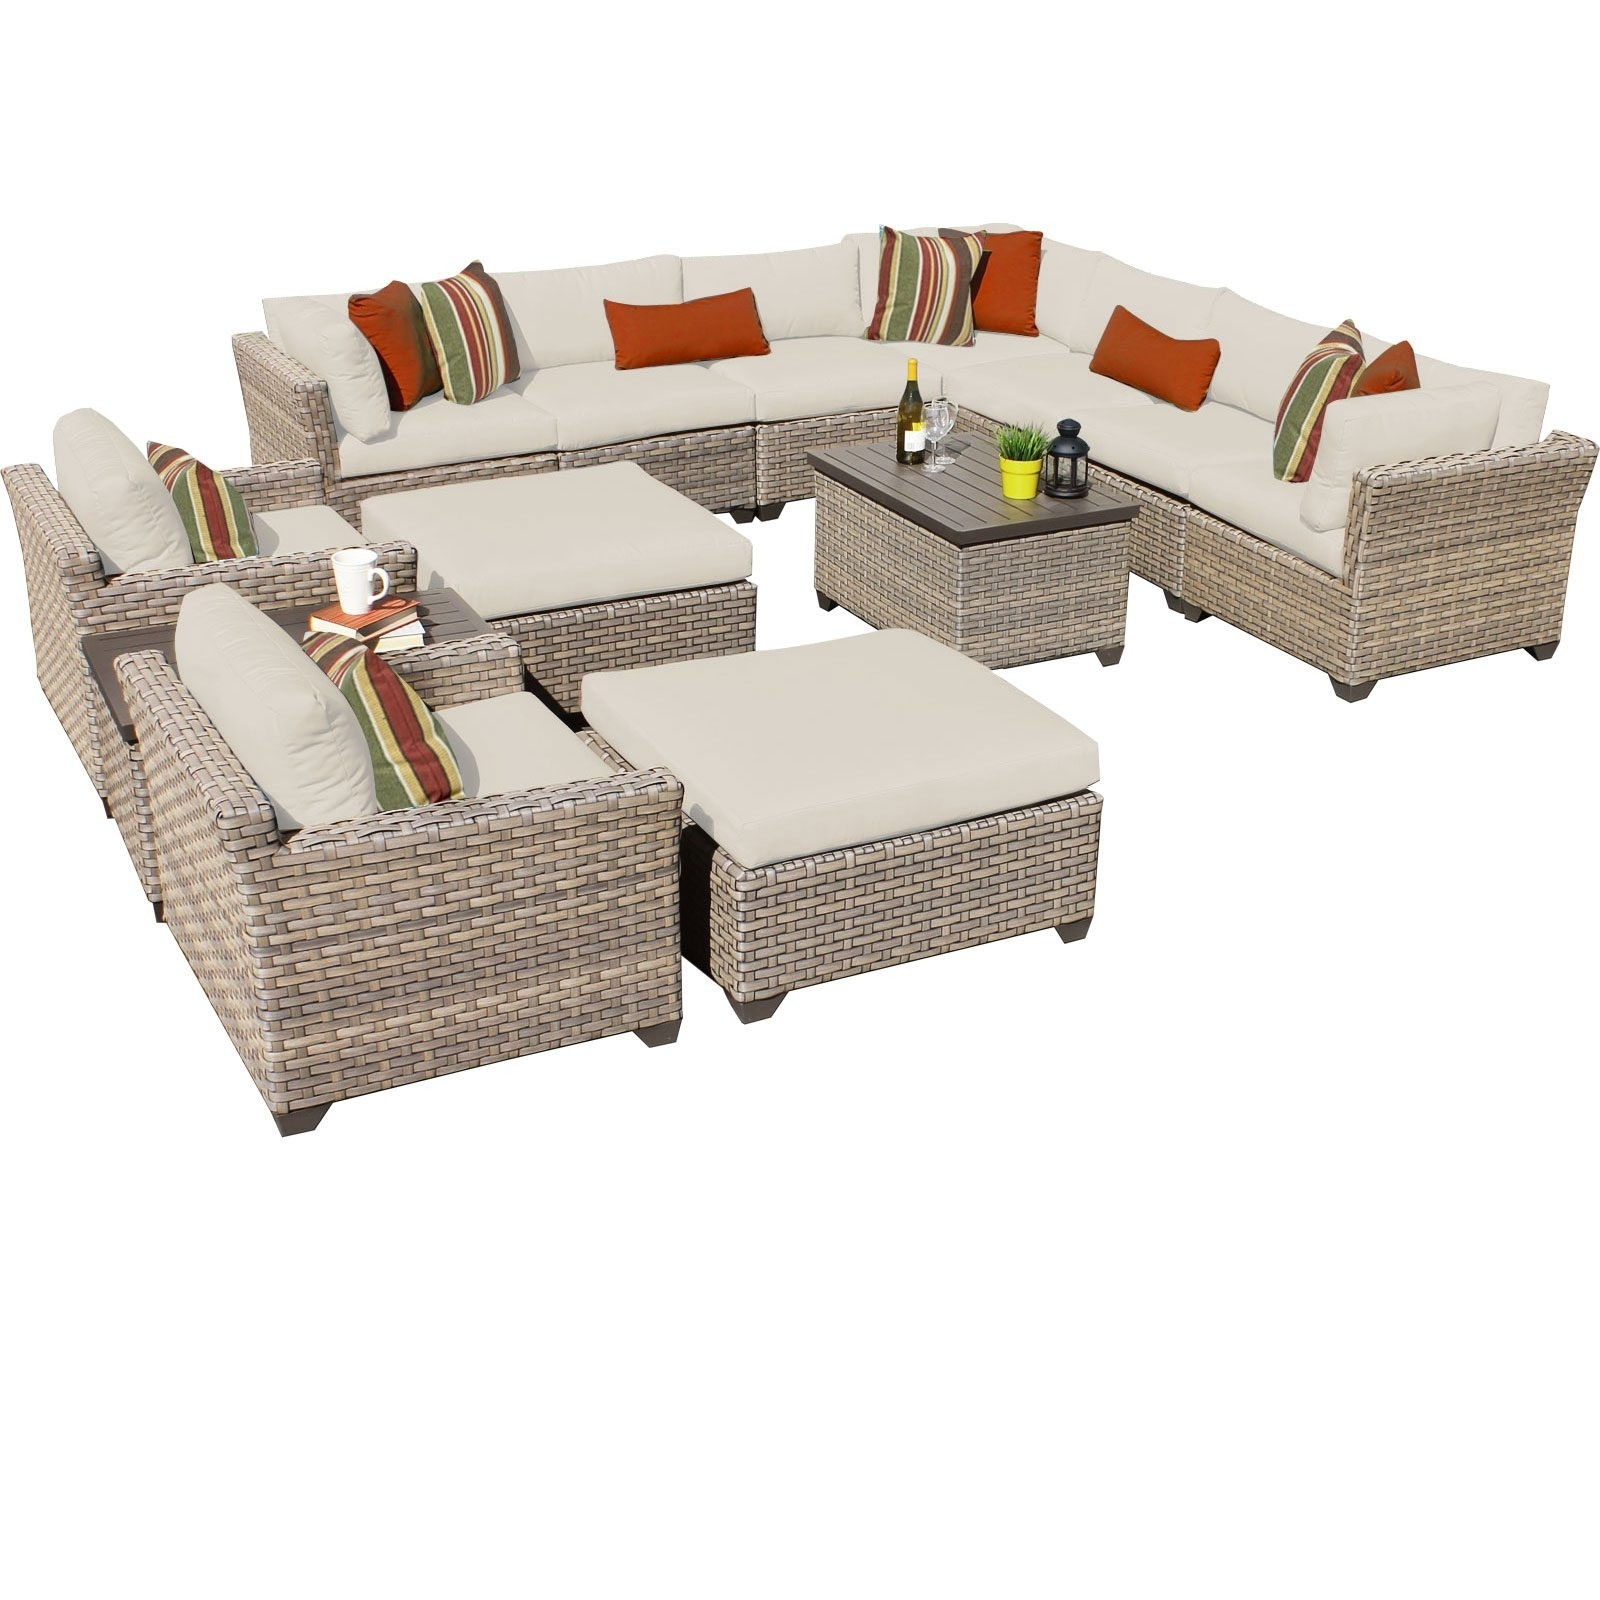 30 Luxury Walmart Patio Sets On Sale Ideas Throughout Most Recently Released Patio Conversation Sets At Walmart (View 12 of 20)